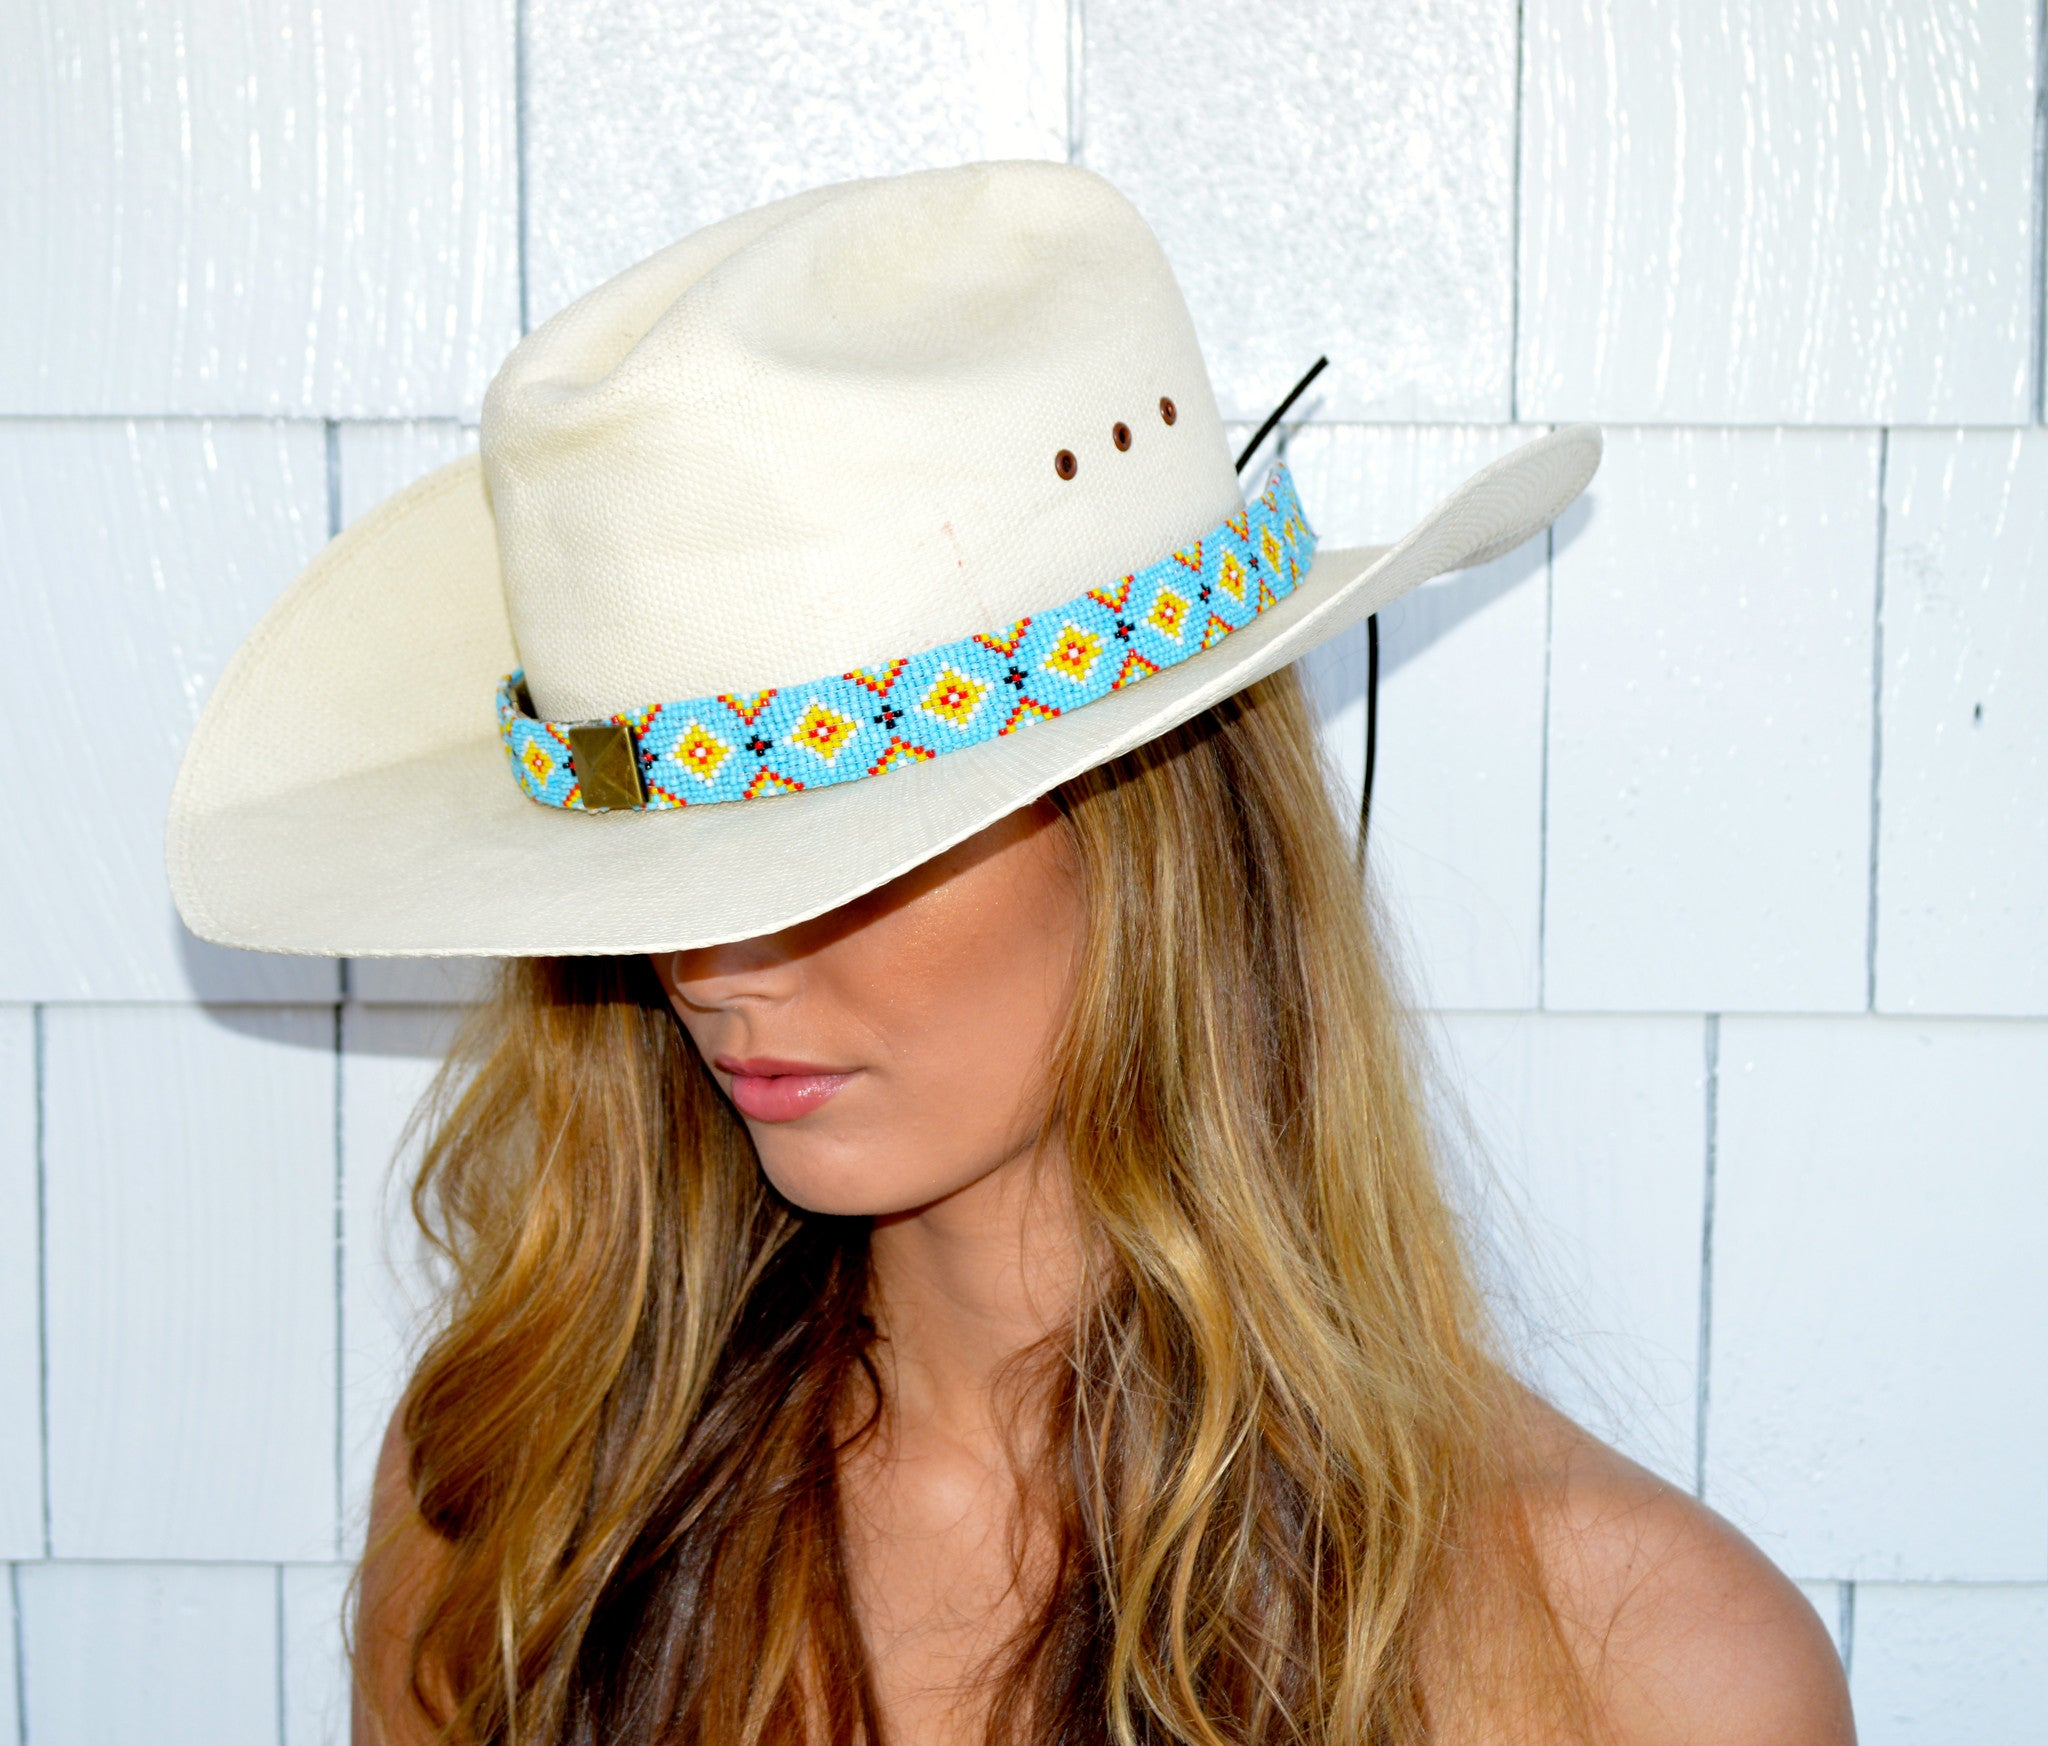 The Miranda Hatband